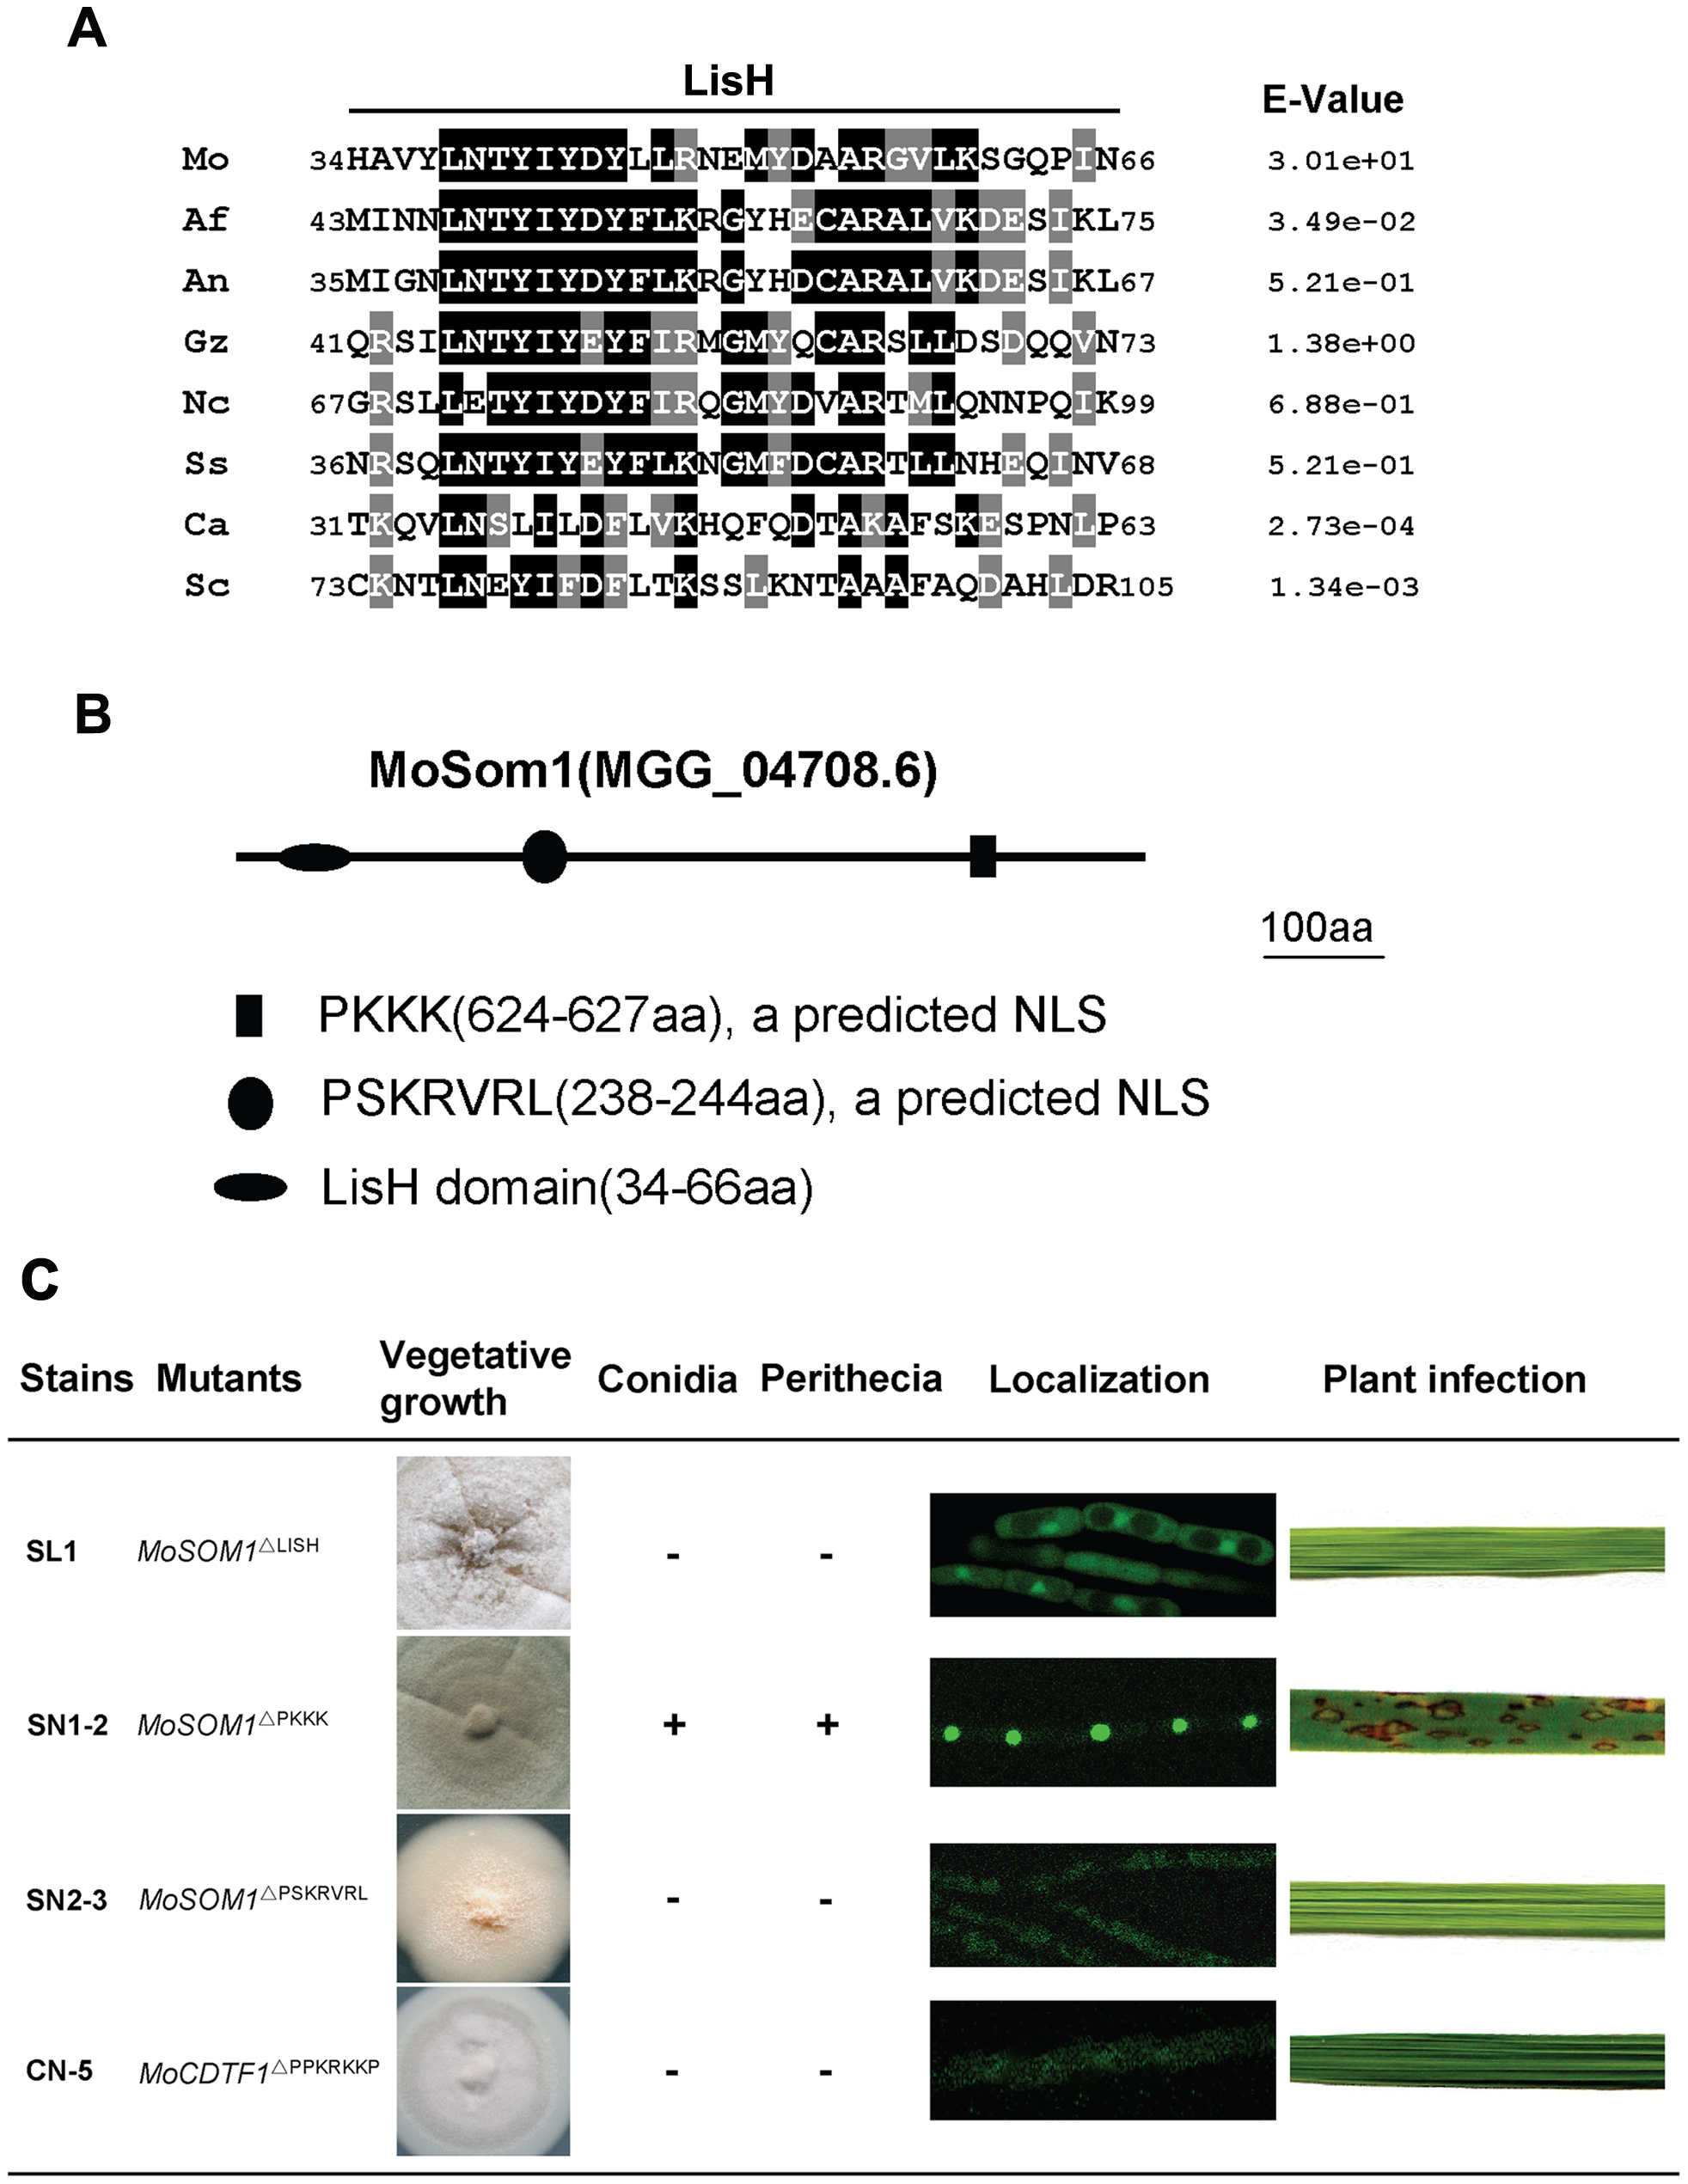 Functional analysis of putative LisH domain and nuclear localization sequences of MoSom1.